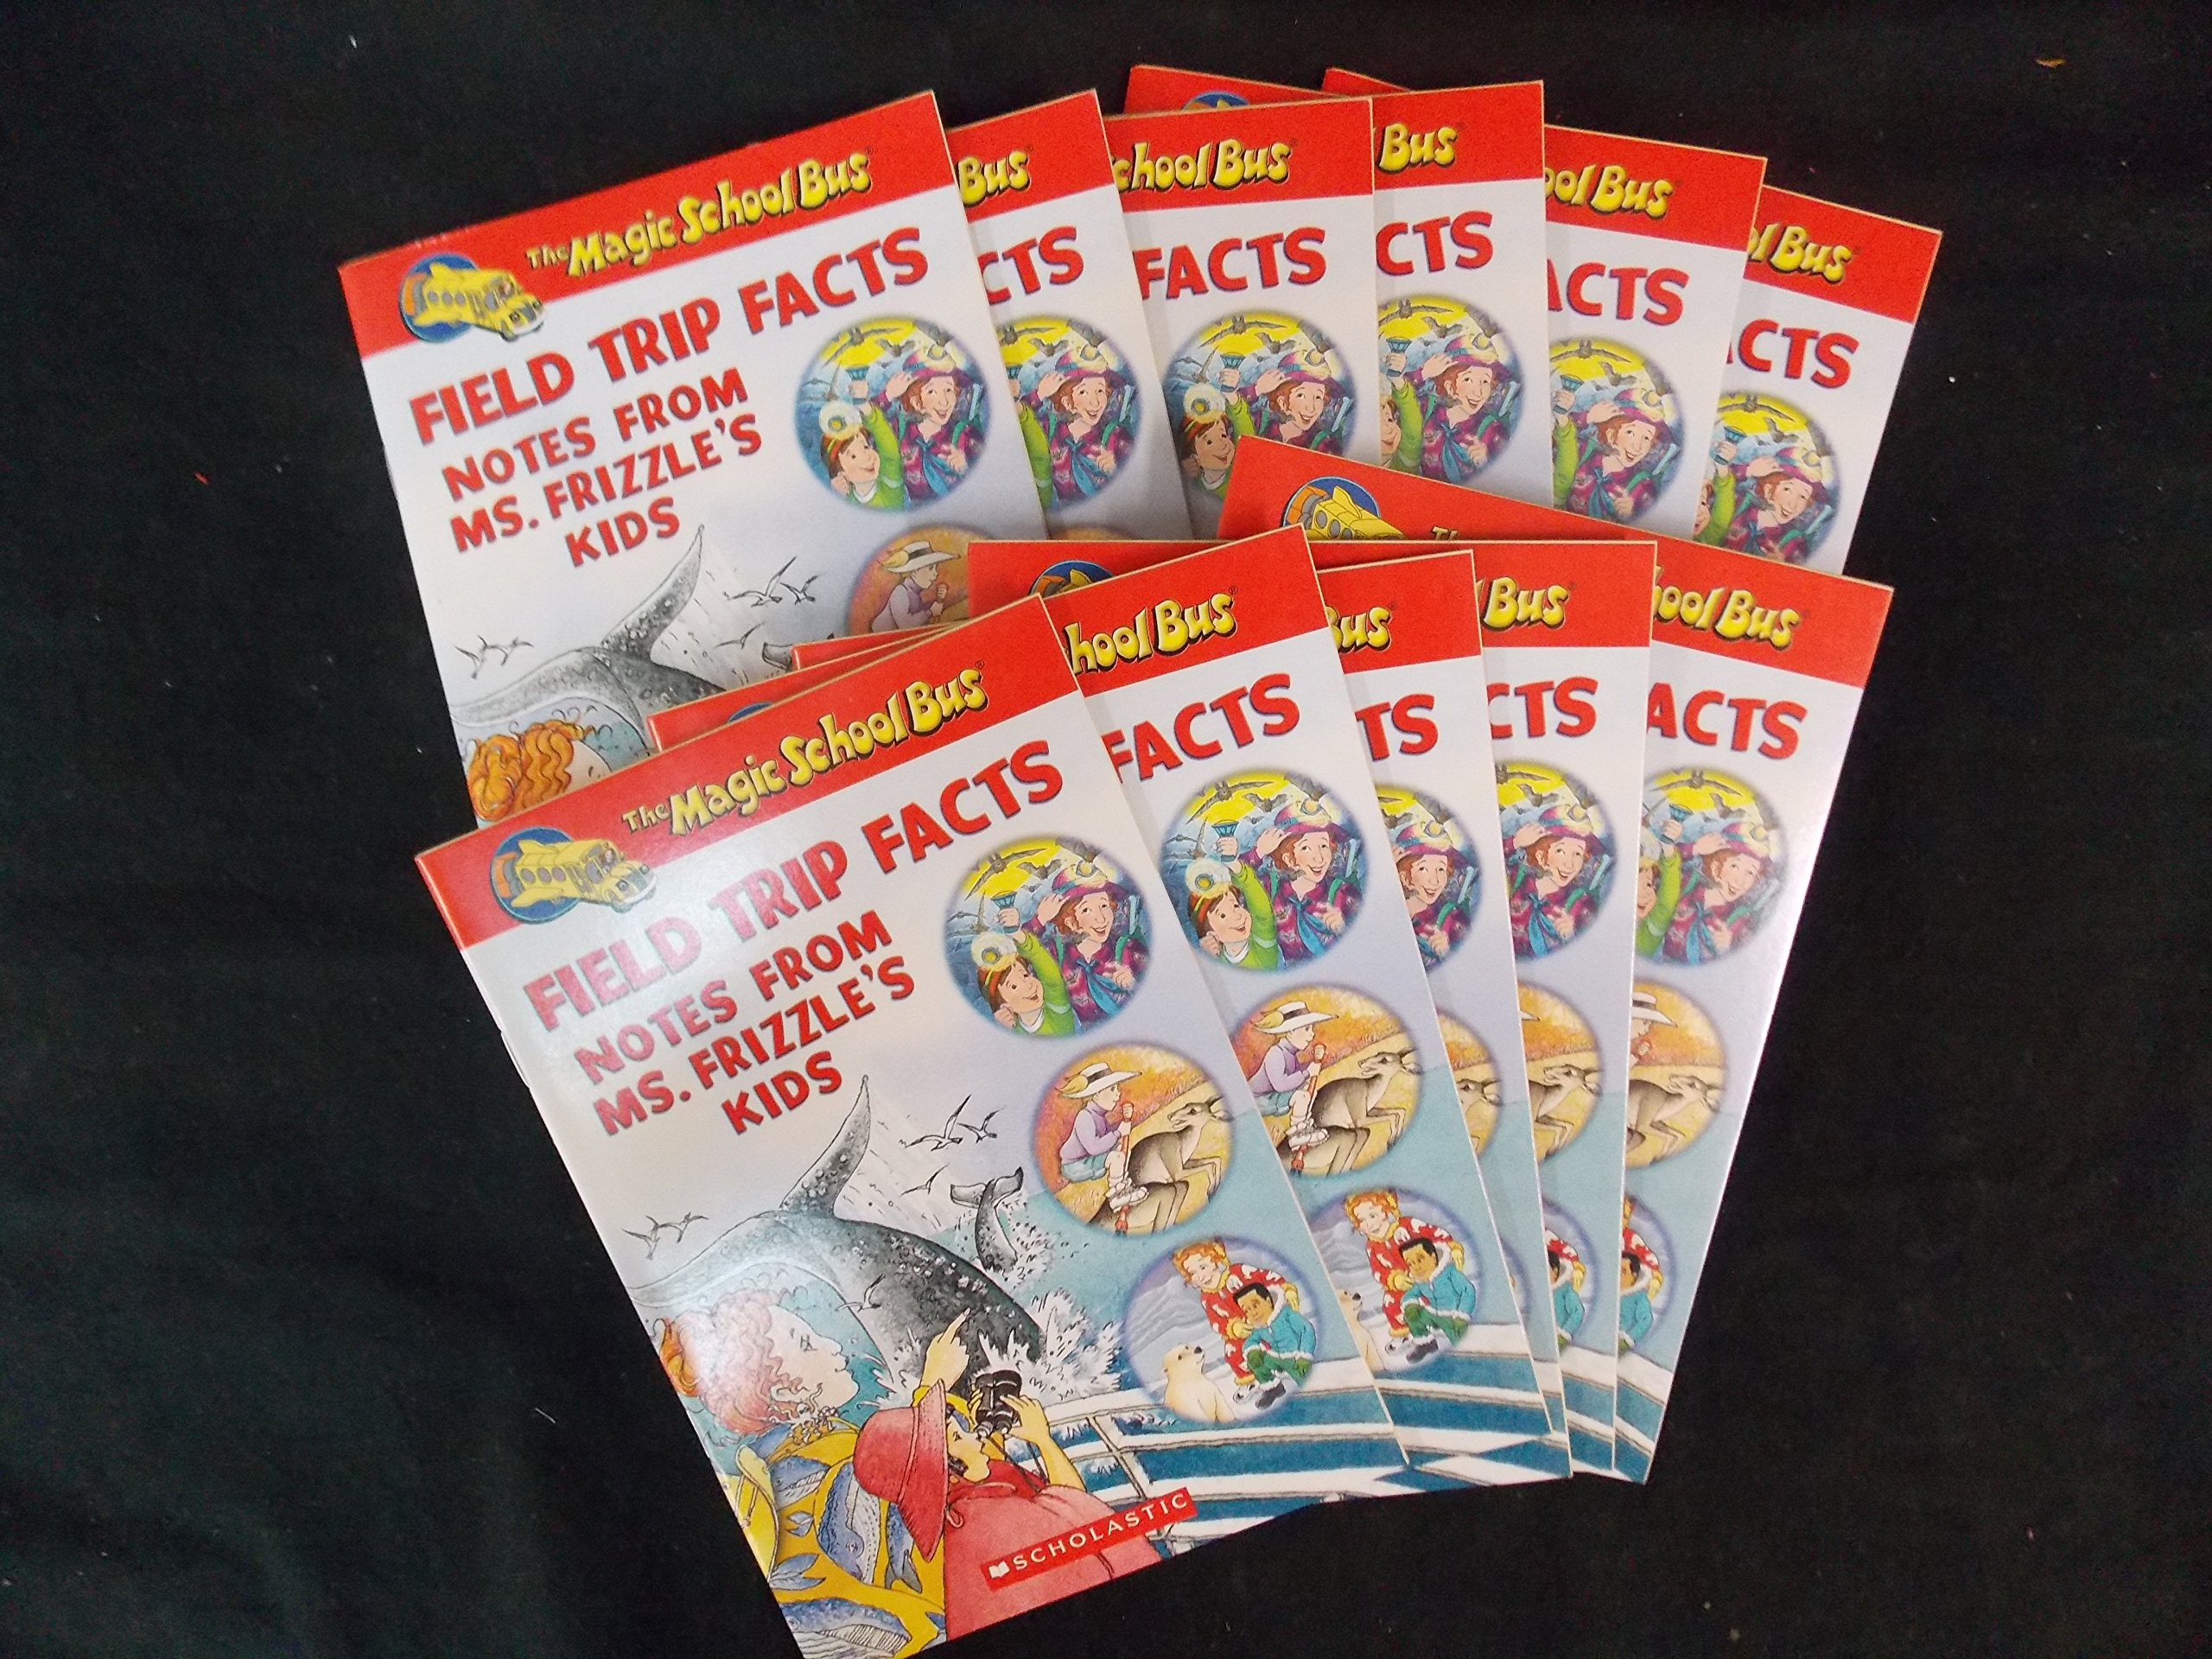 The Magic School Bus, Field Trip Facts Notes From Ms Frizzle's Kids, Total 11 Books, Great for Teacher pdf